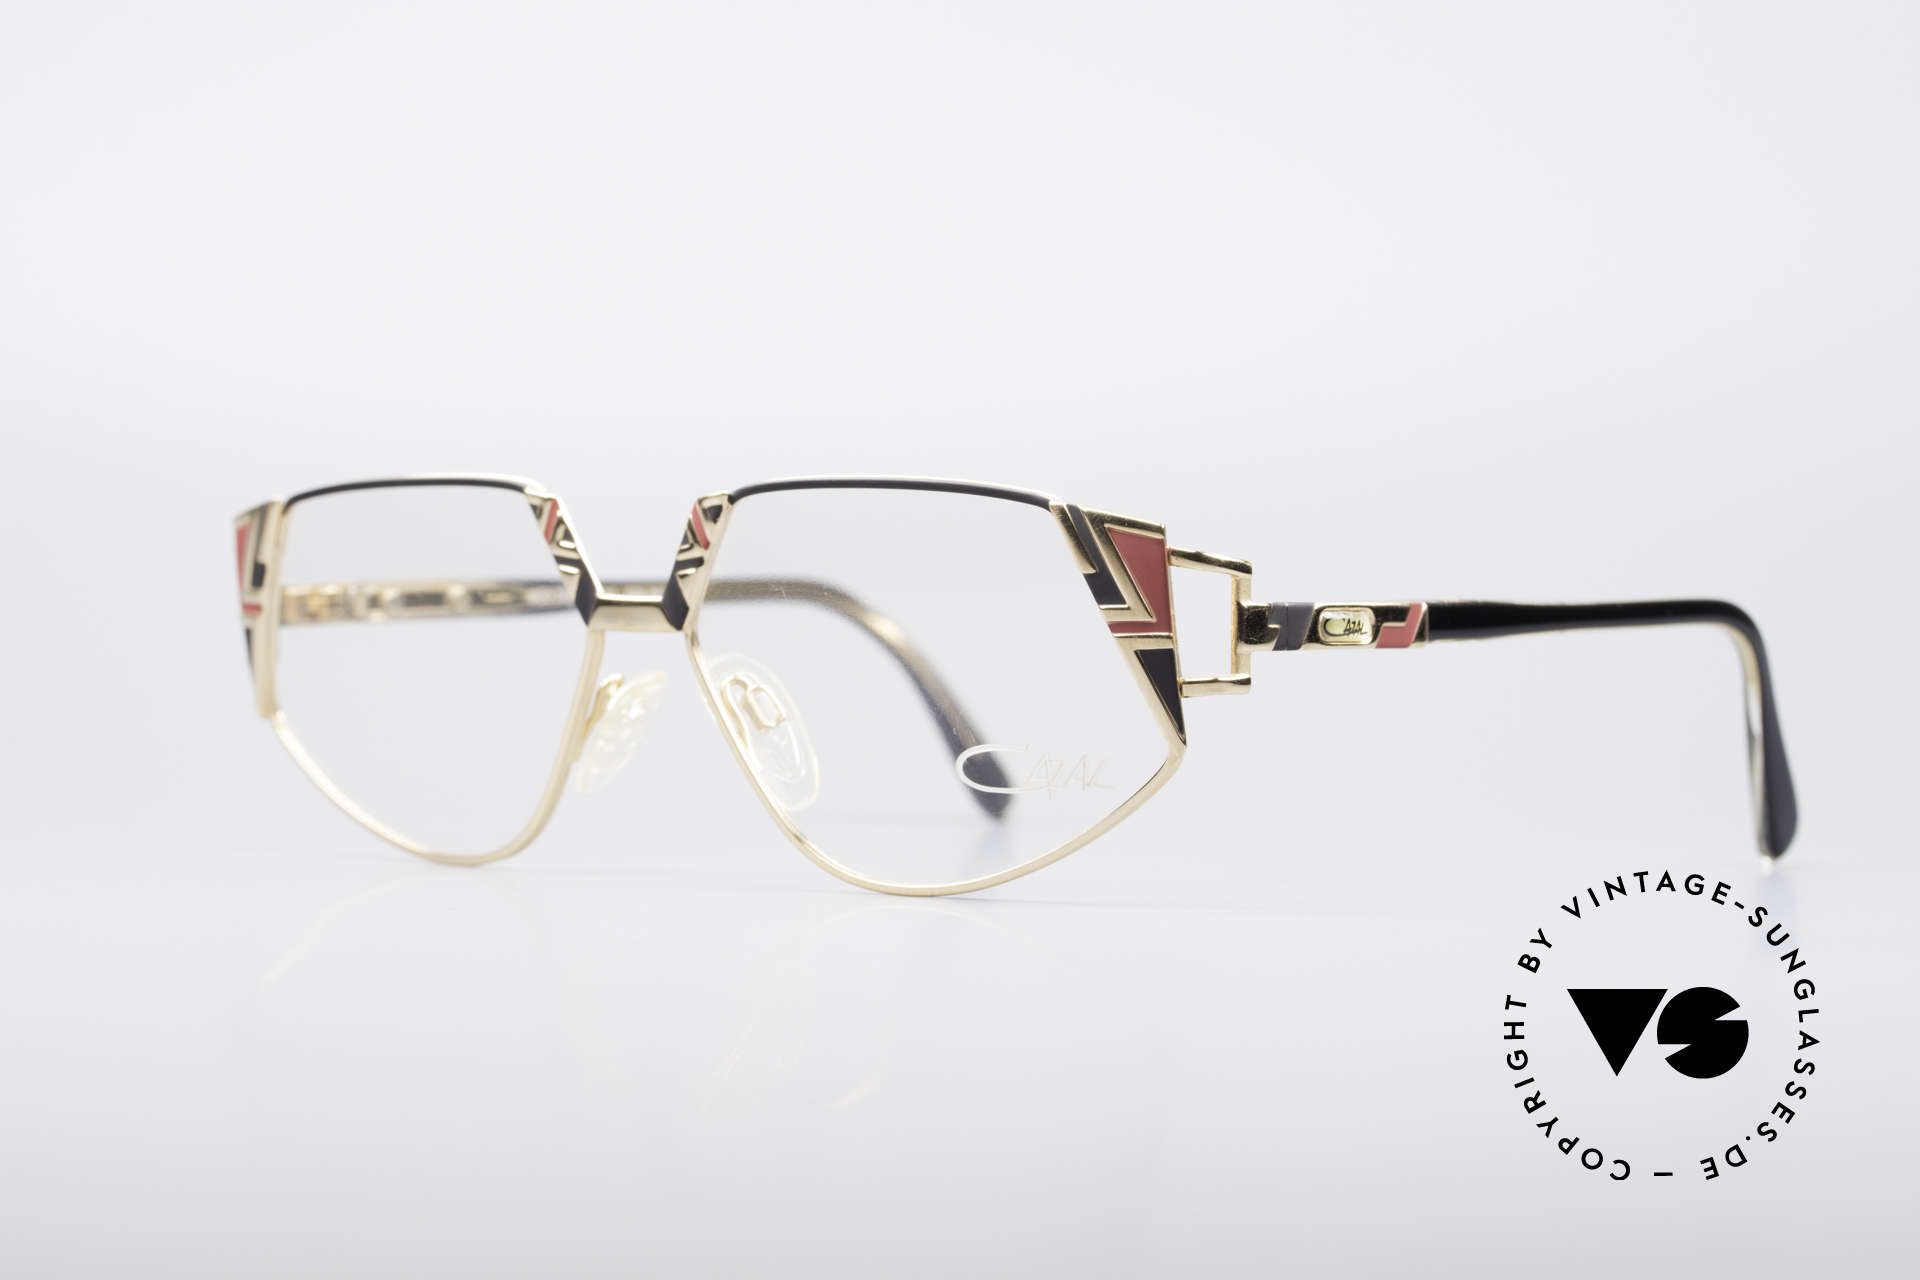 Cazal 238 Cateye Vintage Glasses, brilliant combination of forms, colors and materials, Made for Women